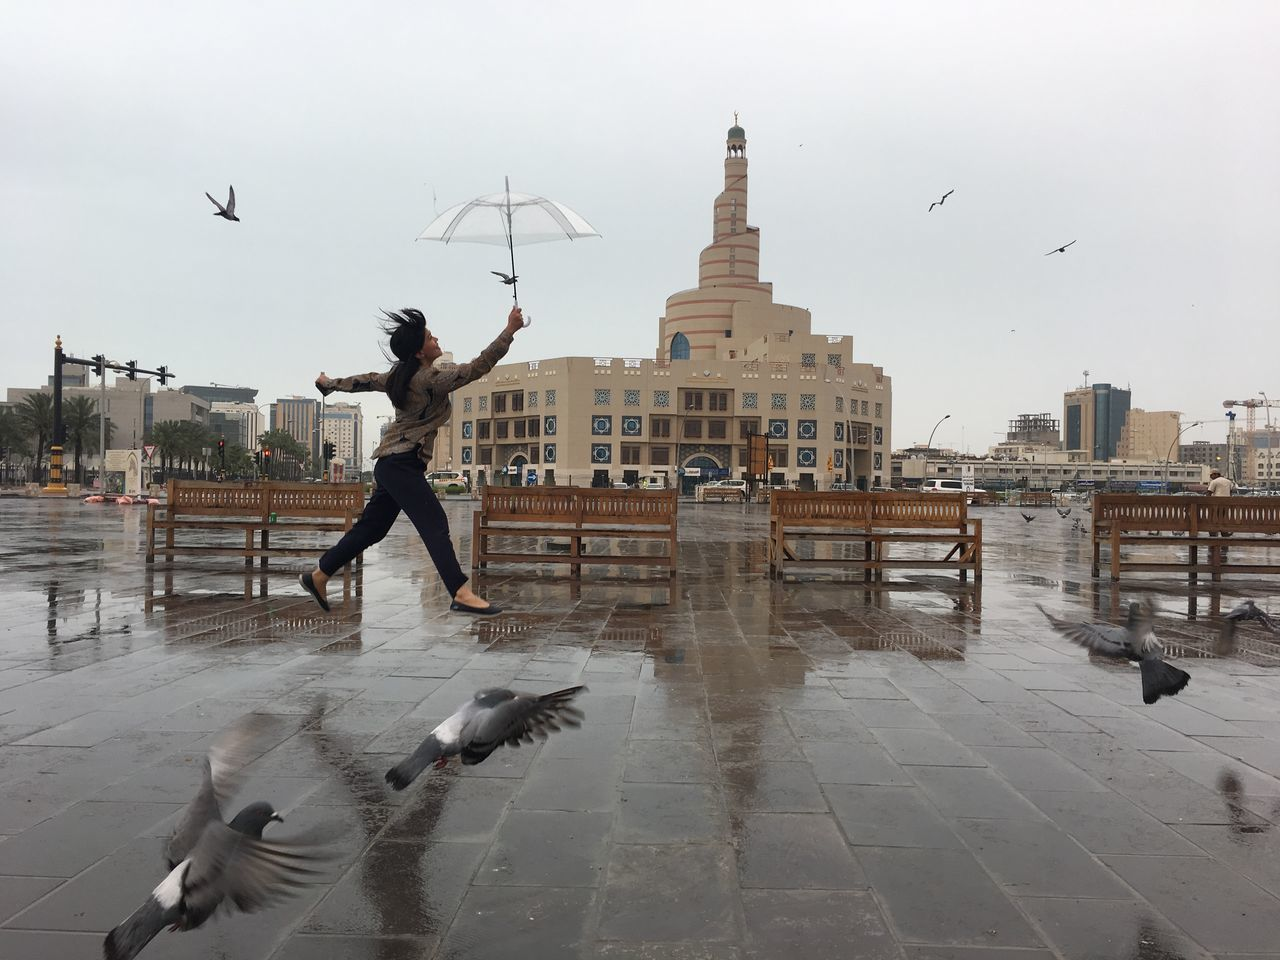 mid-air, bird, real people, flying, motion, building exterior, architecture, built structure, spread wings, animals in the wild, men, leisure activity, animal wildlife, large group of animals, lifestyles, flock of birds, outdoors, full length, one person, day, water, city, jumping, seagull, energetic, sky, nature, mammal